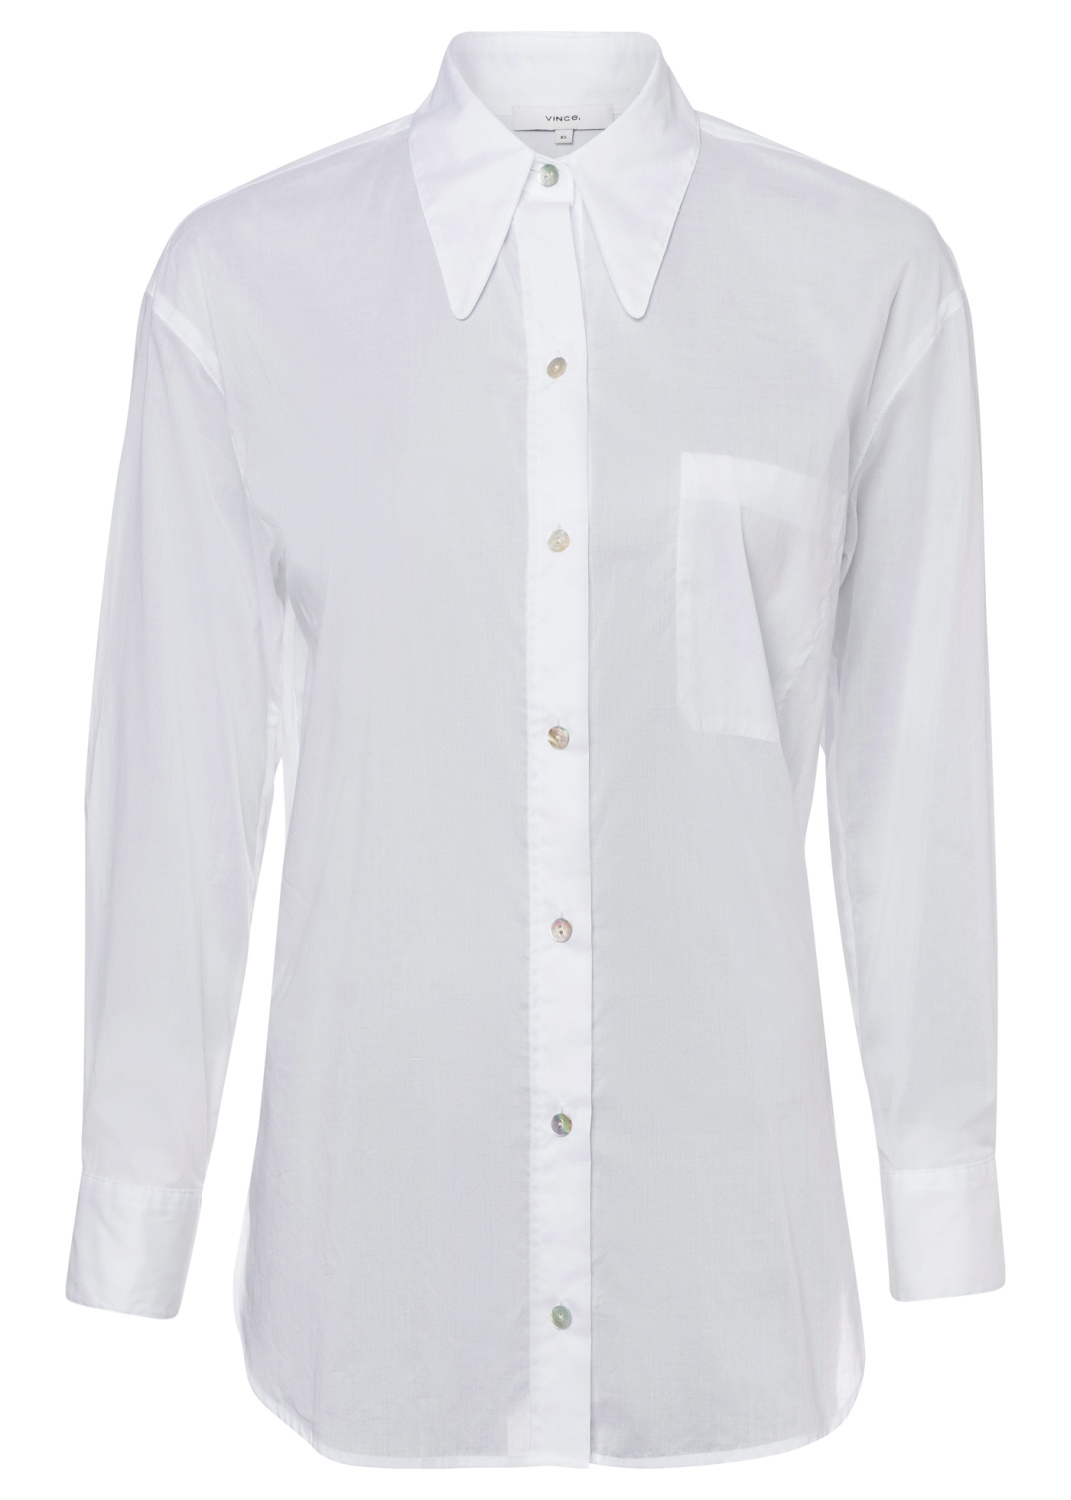 CASUAL PKT STITCH BUTTON DOWN image number 0